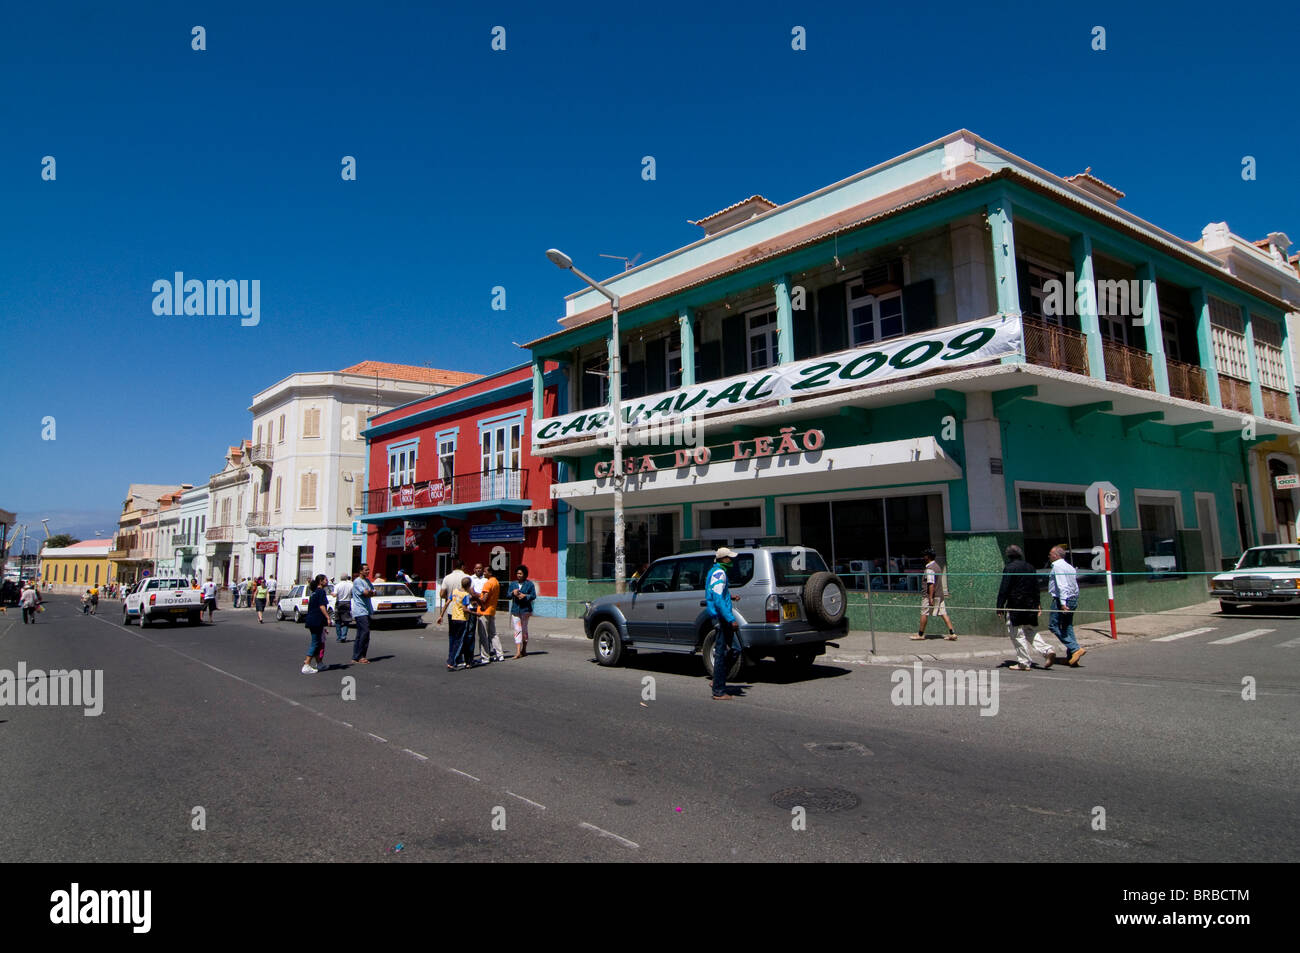 Picturesque old town with roads and buildings, Mindelo, Sao Vicente, Cape Verde - Stock Image